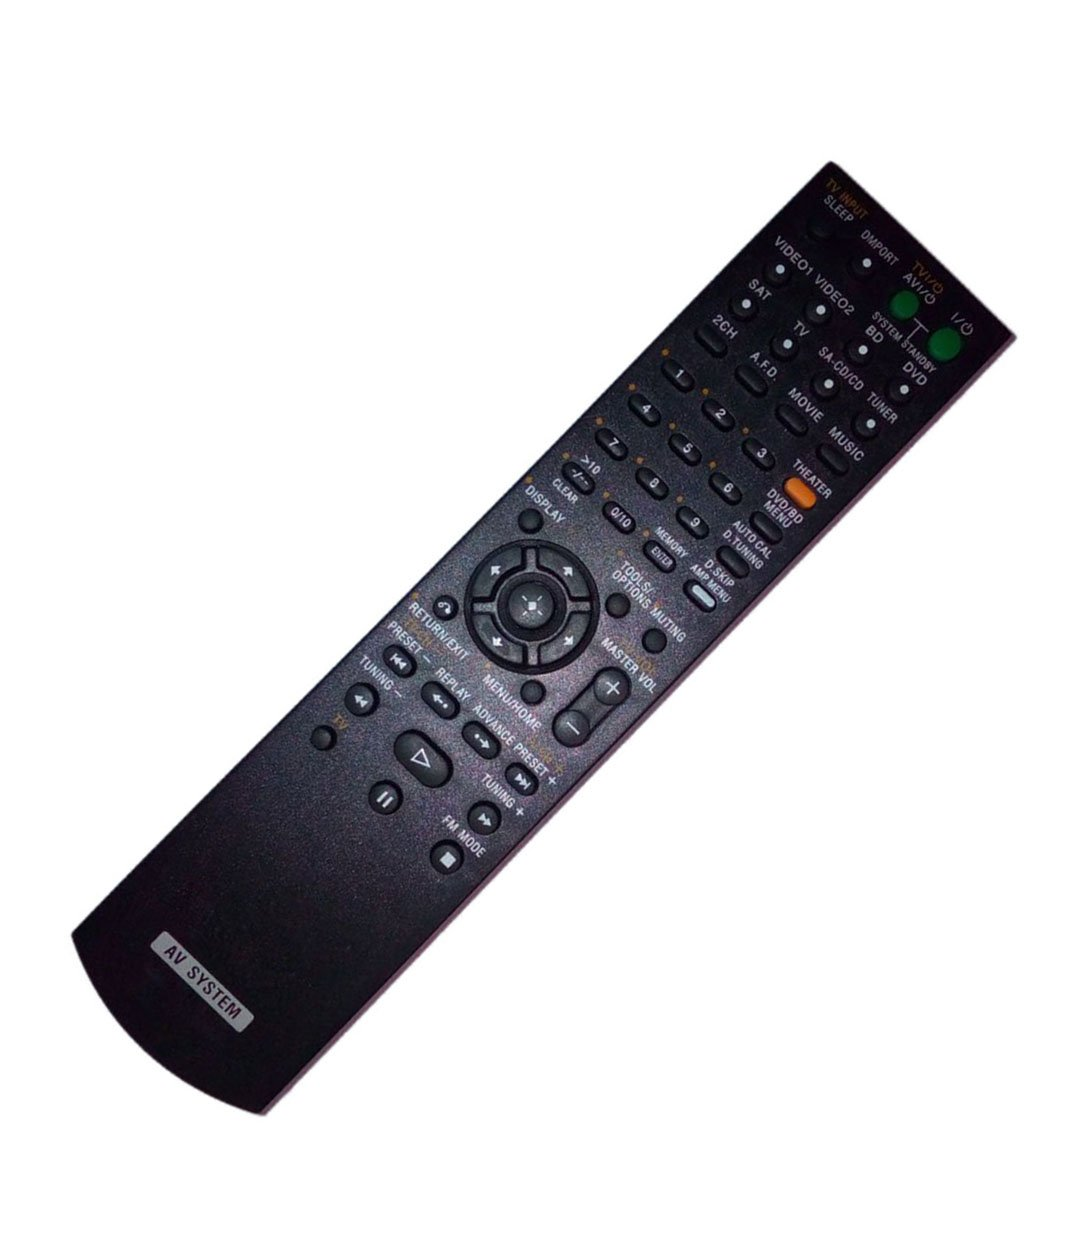 Replaced Remote Control for Sony RM-AAU027 RM-AAU021 HTSS2300/C STRDG520 HT7200DH Home Theater Audio/Video Receiver AV System JustFine 4330960605